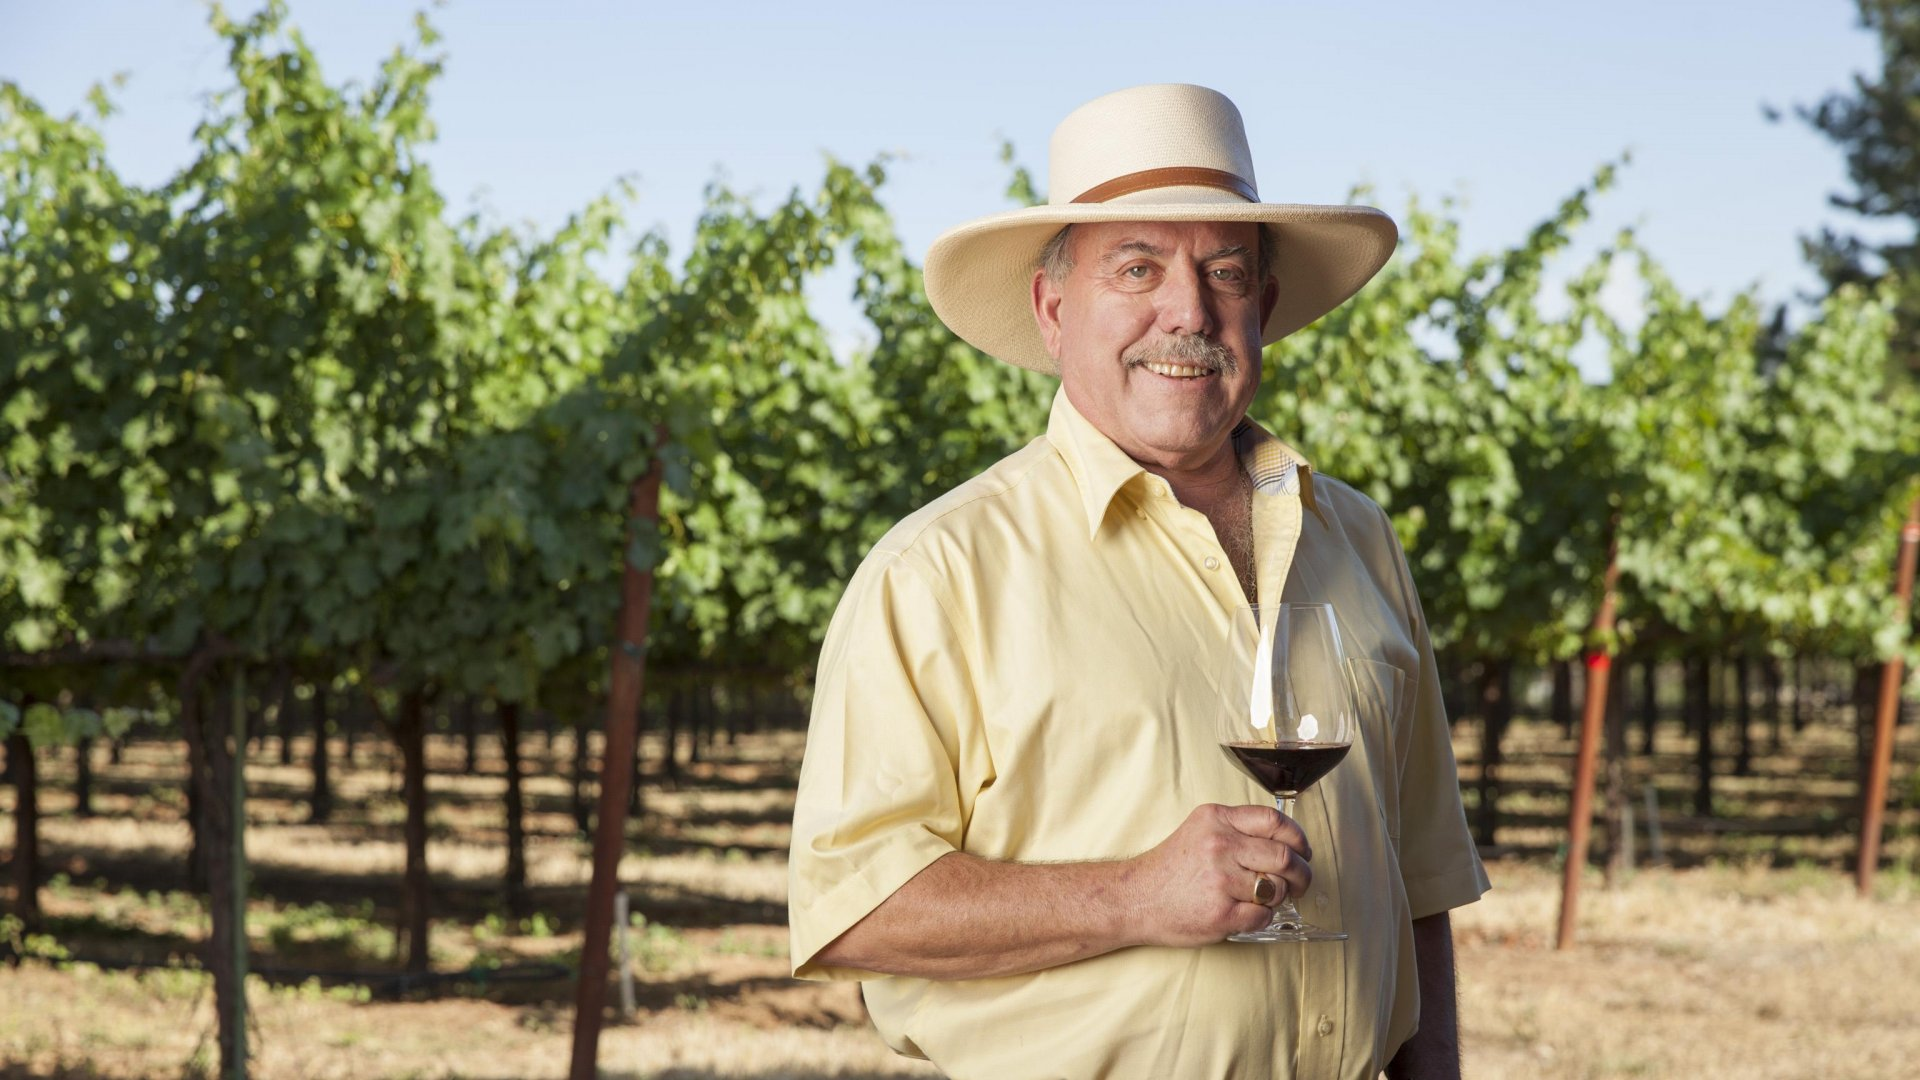 Iconic US Winemaker Toasts Tradition While Embracing Change